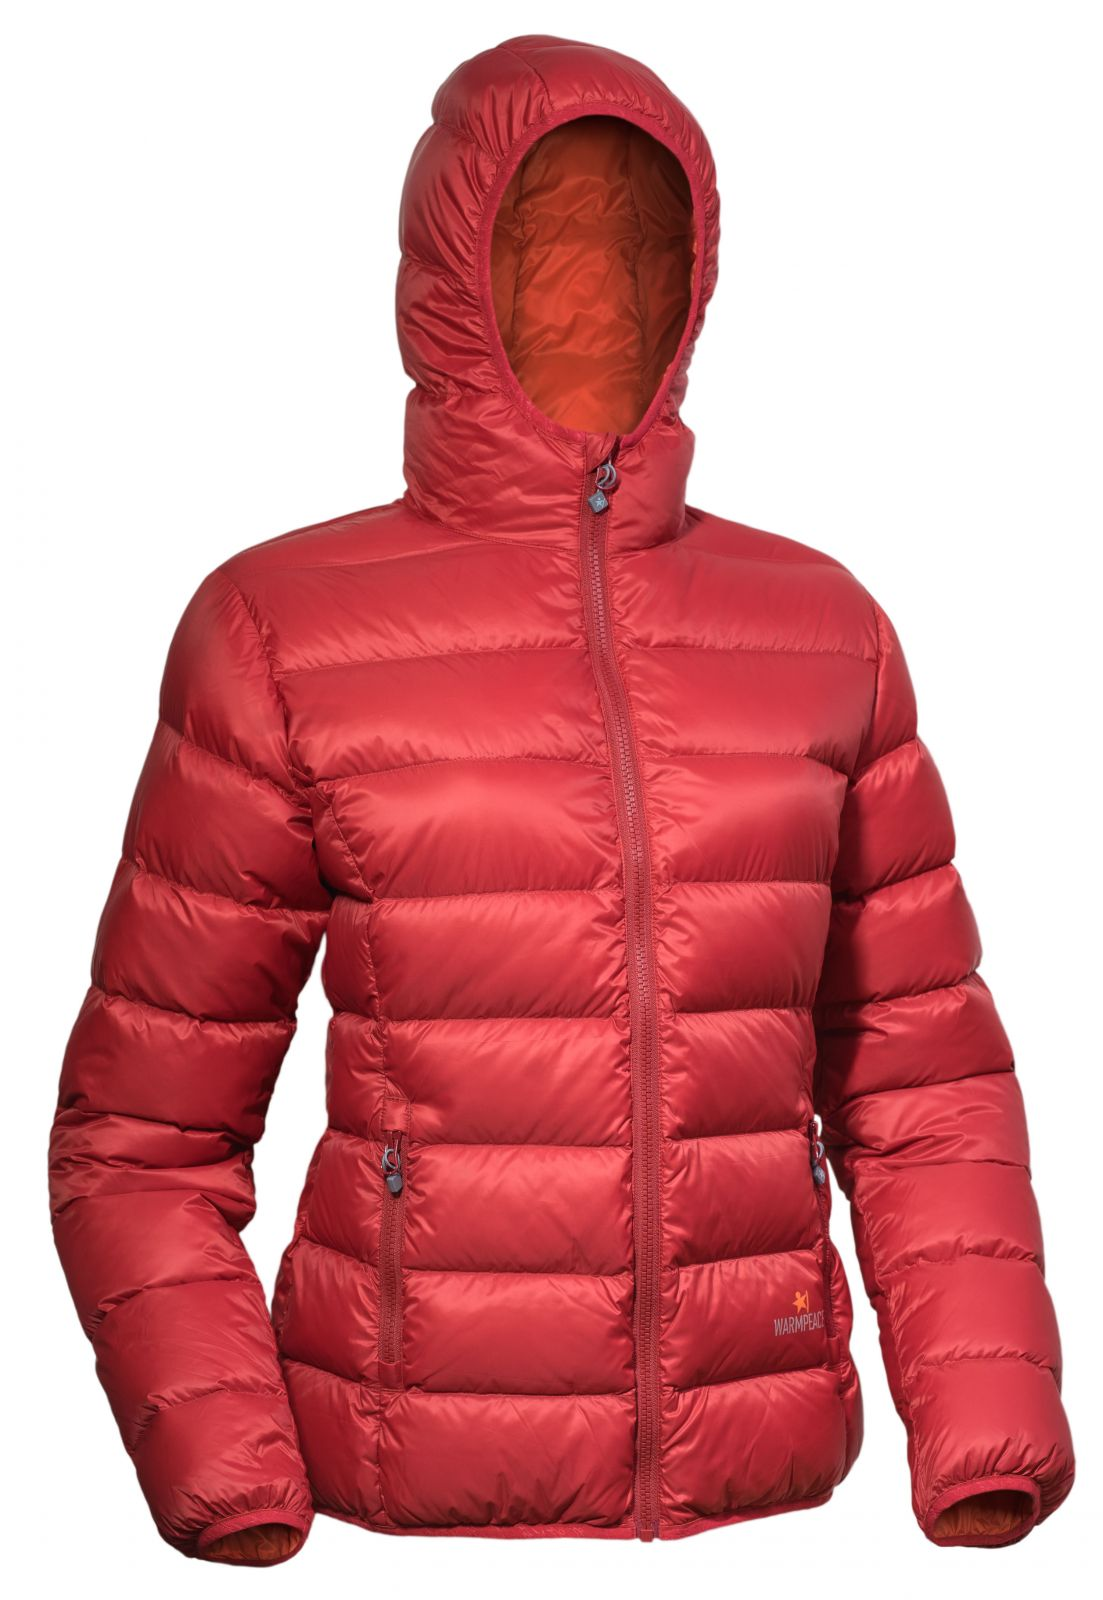 Tazz-Sport - Warmpeace Tacoma lady mars red/orange dámská péřová bunda